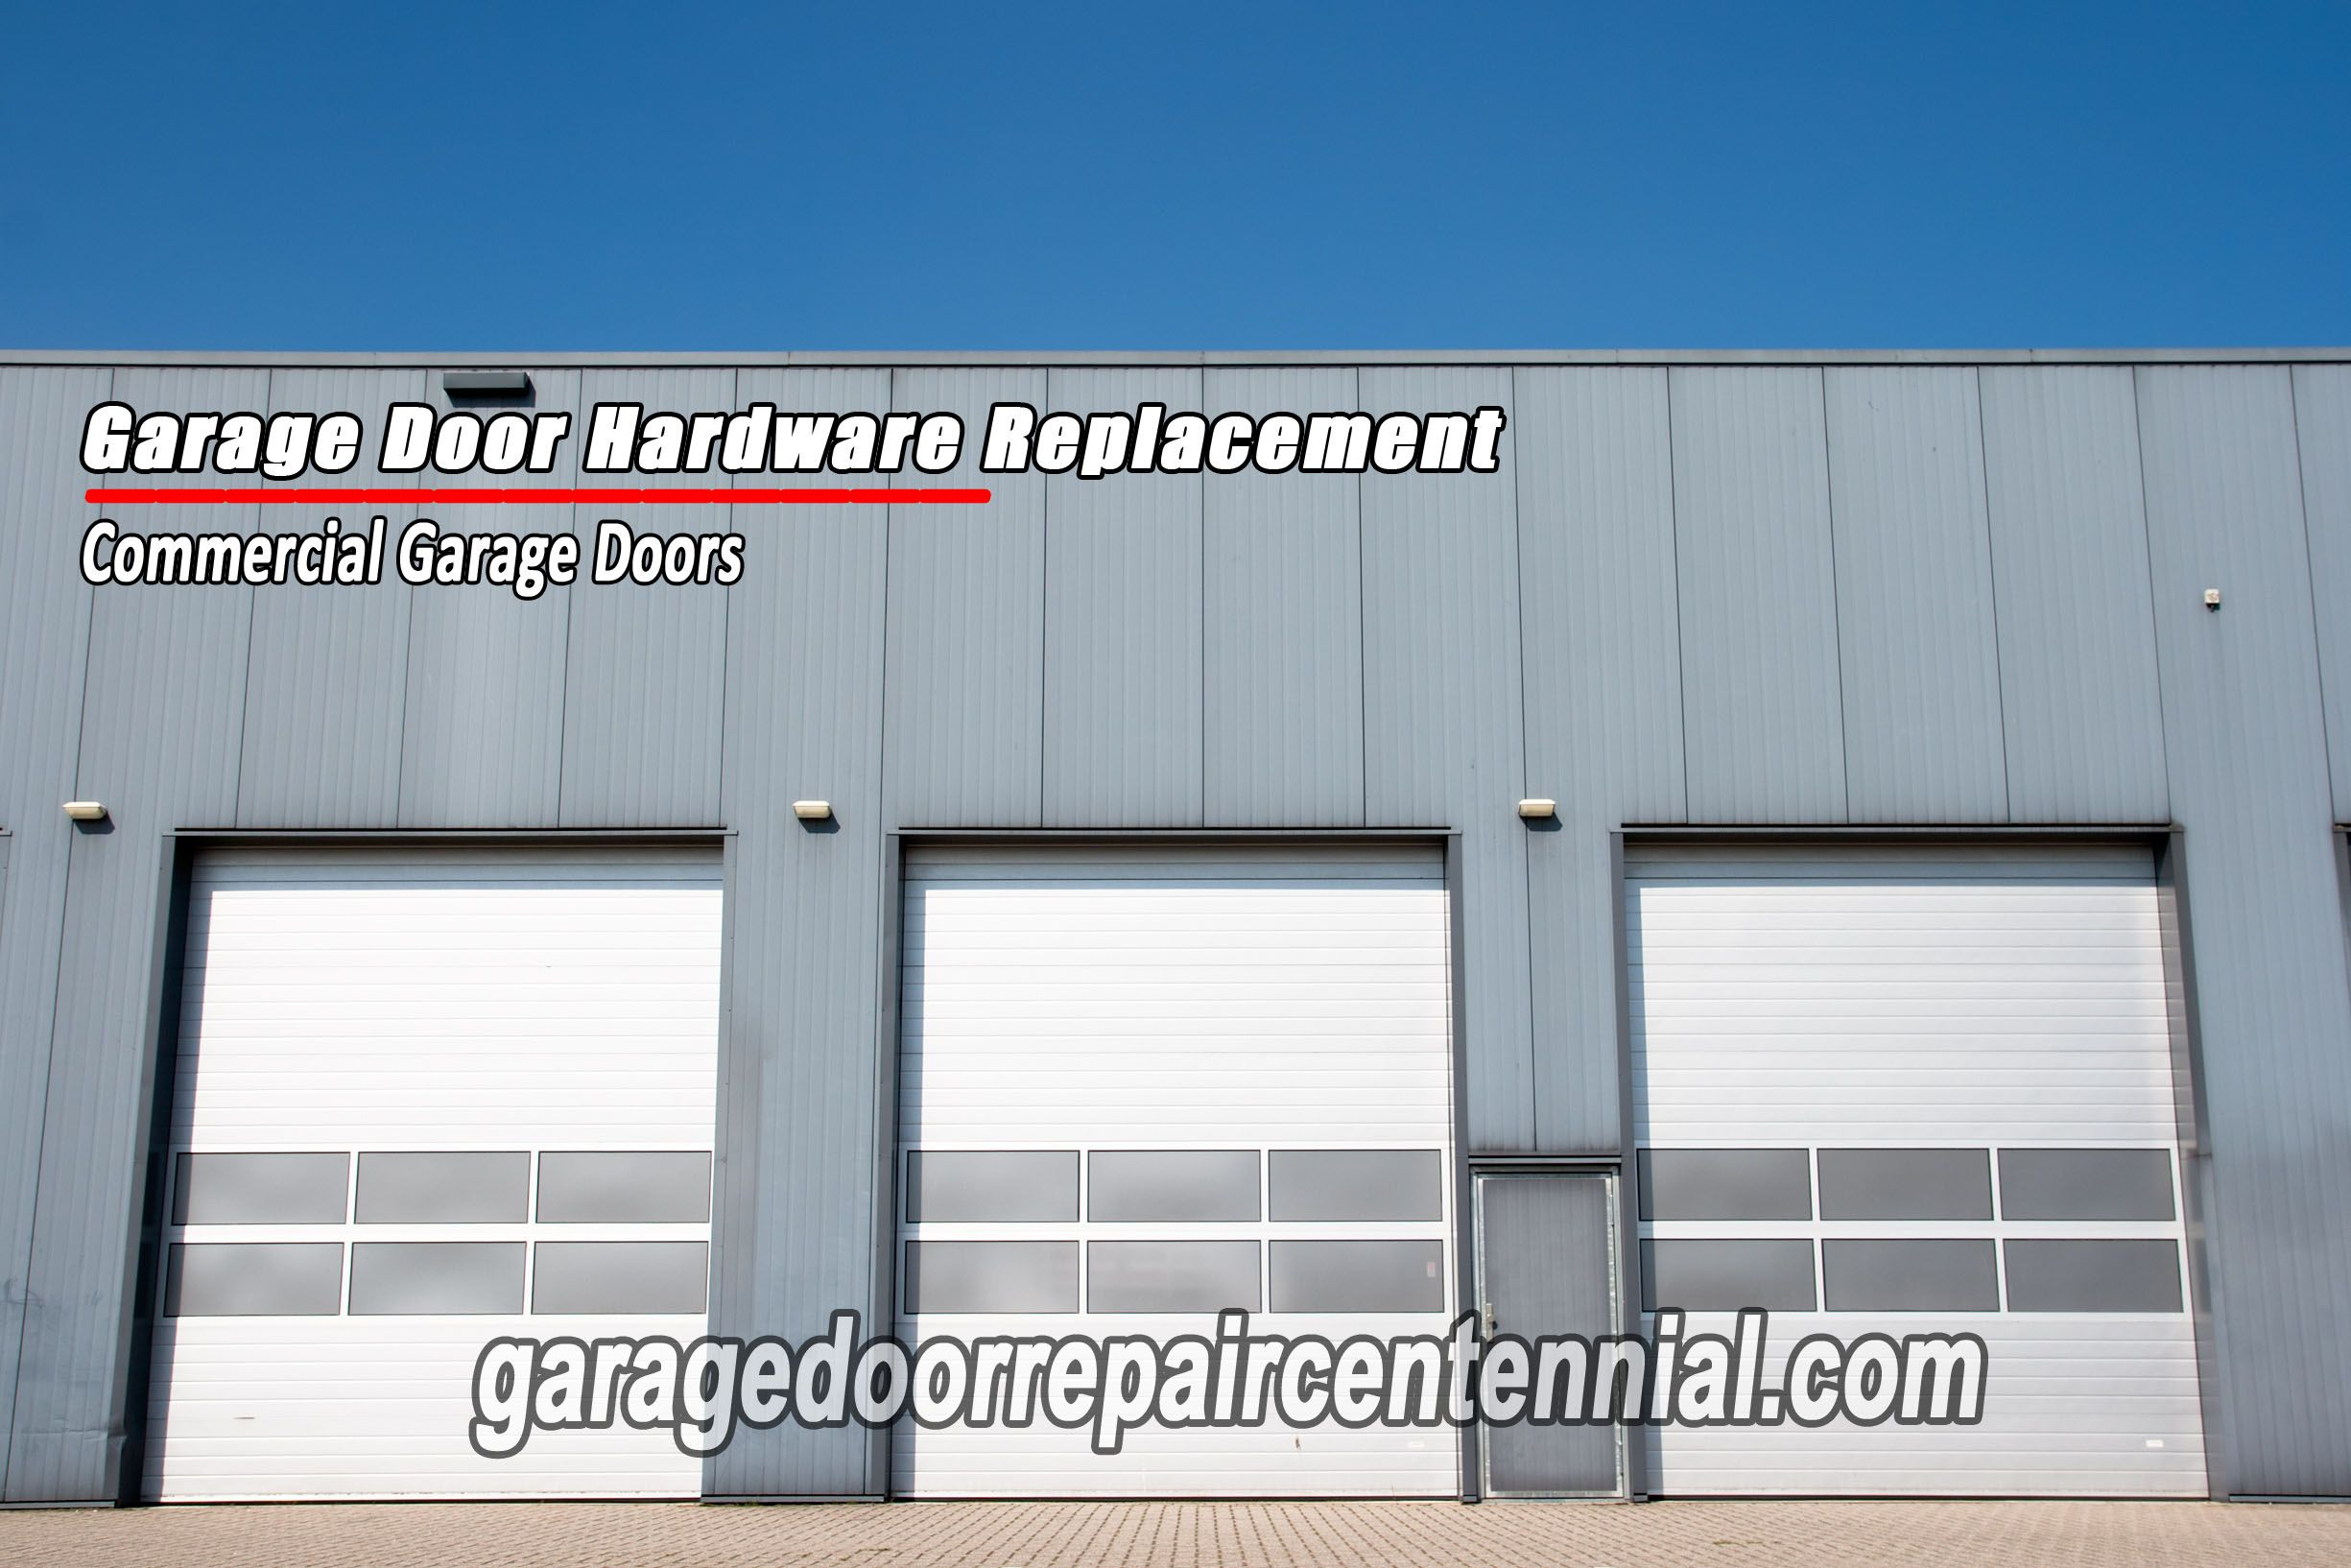 Centennial-garage-door-hardware-replacement & Centennial-garage-door-hardware-replacement | Welcome to ... pezcame.com